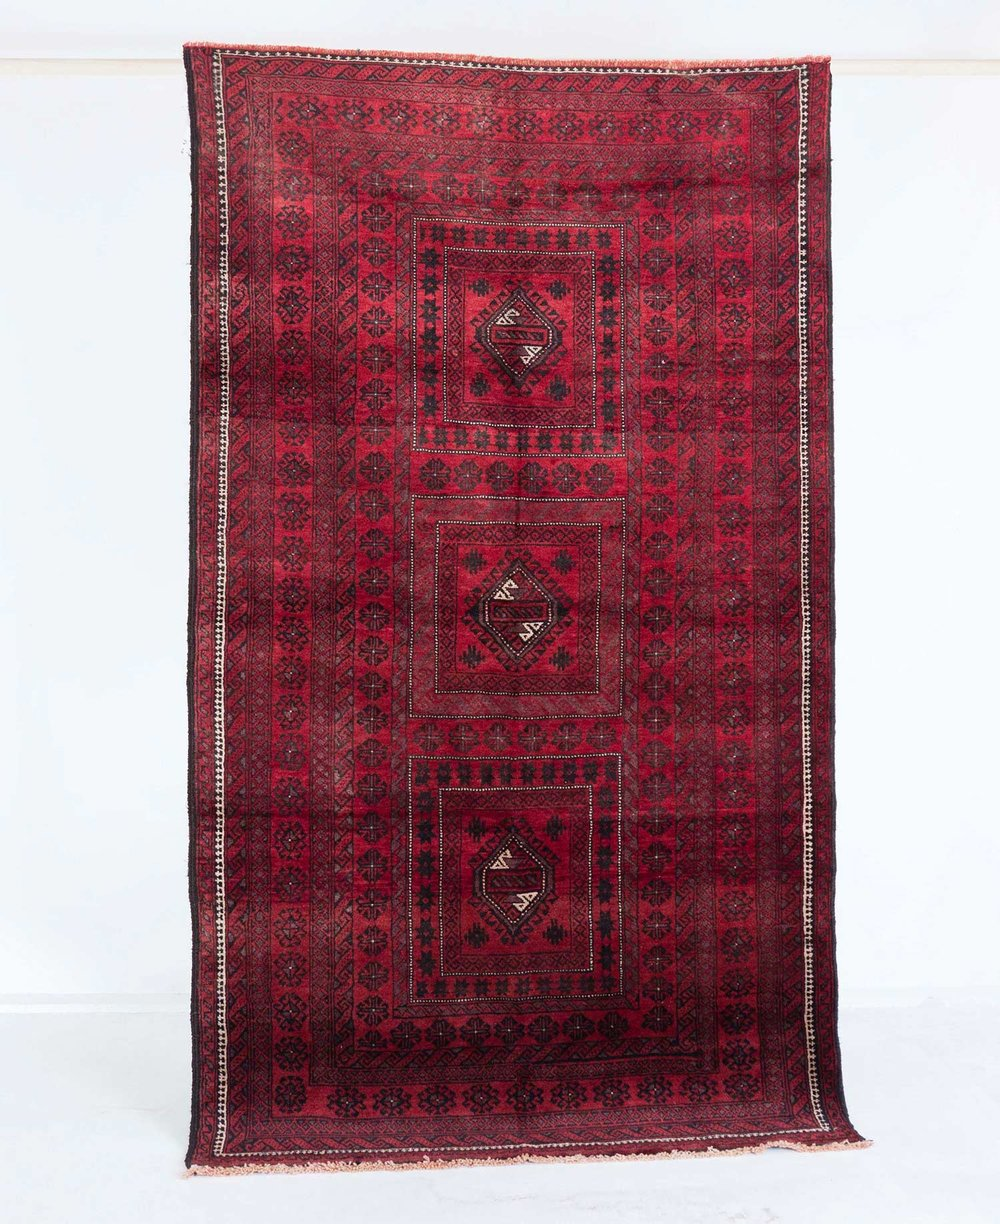 NO. 0092 /   PERSIAN (BALOUCH) / 70 YEARS / 7'1 x 4'0 FT